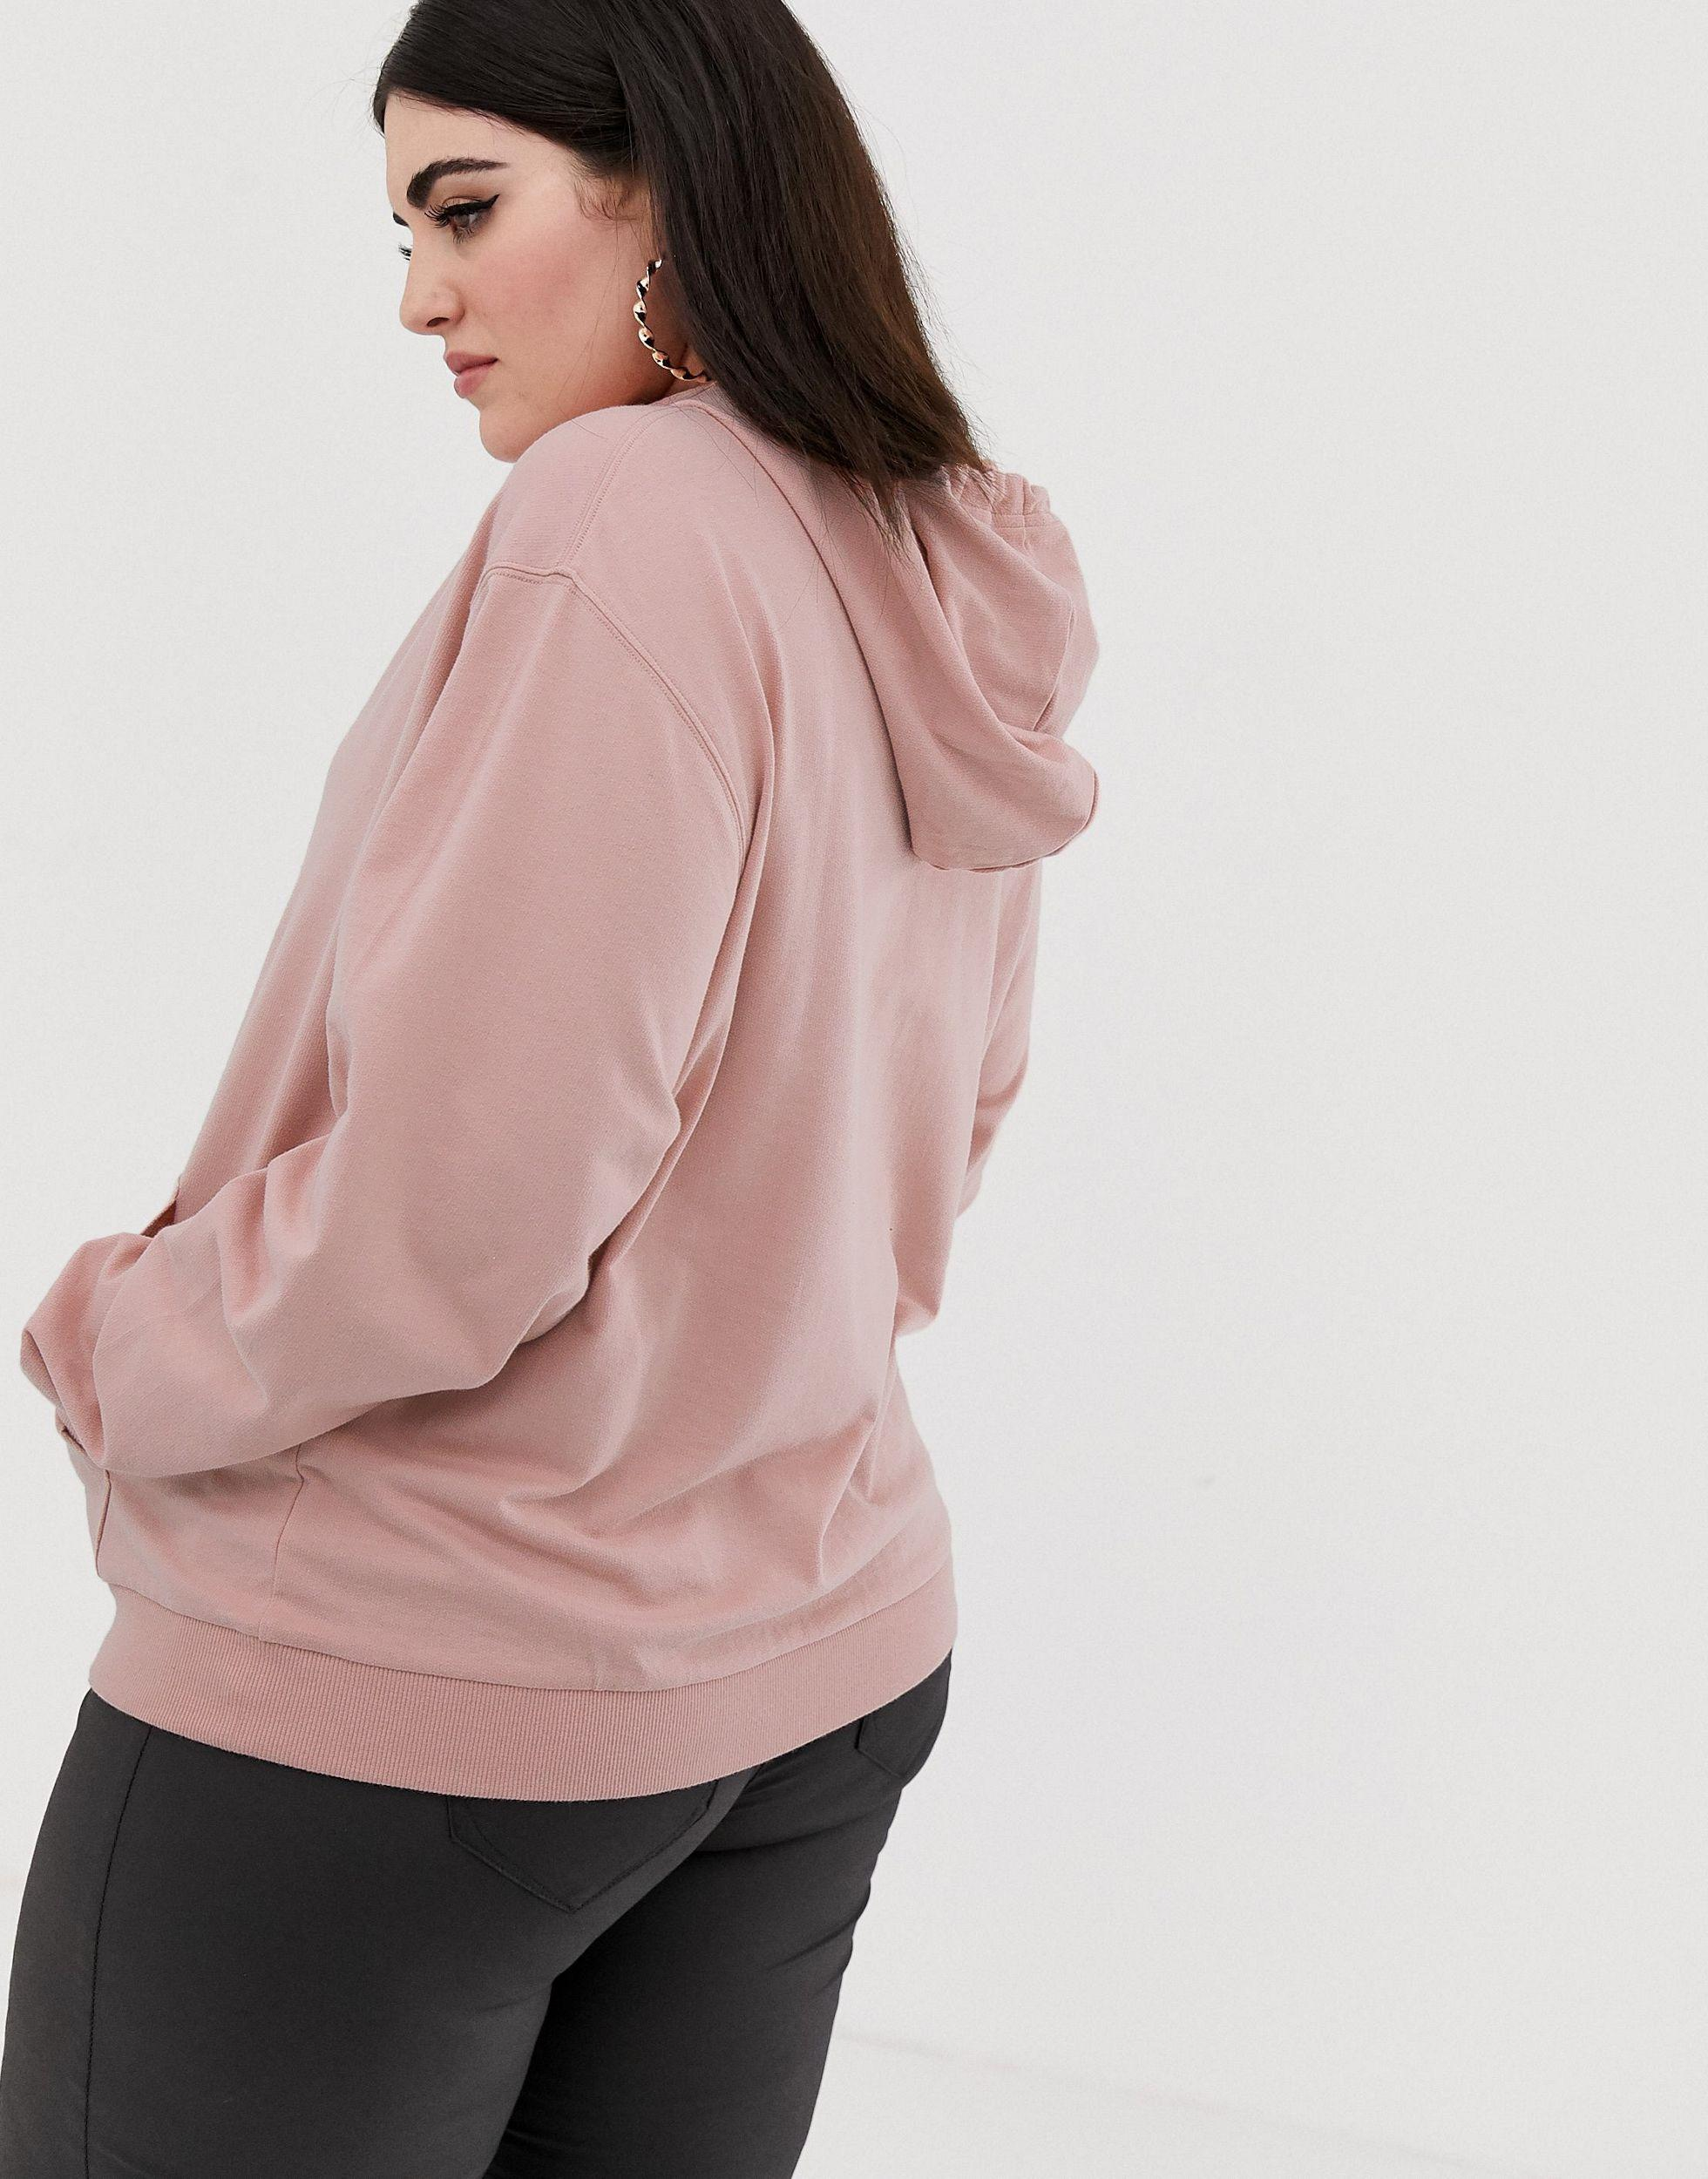 ASOS DESIGN Curve - Ultimate - Hoodie Jean ASOS en coloris Rose